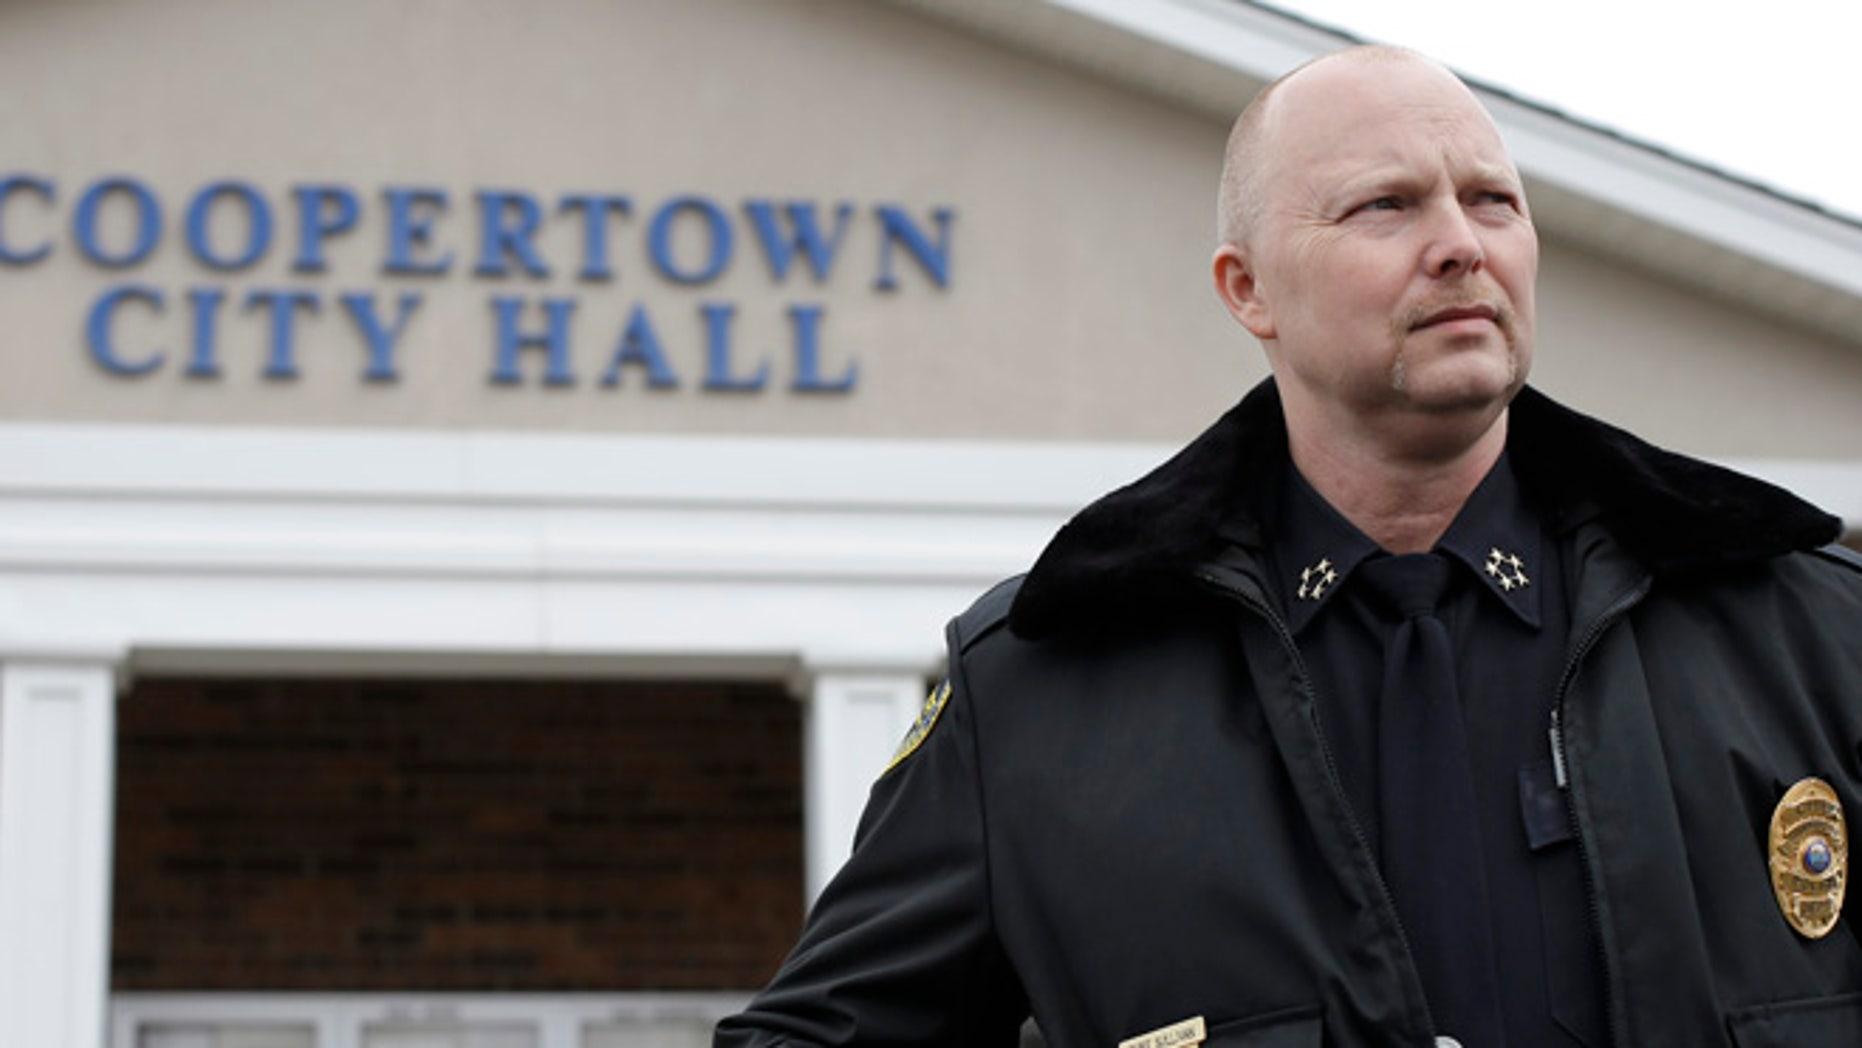 Feb. 13, 2013: Coopertown, Tenn., Police Chief Shane Sullivan at the Coopertown City Hall. The department was disbanded for several months last year after an officer was recorded using a racial slur to describe a black motorist. Sullivan, hired in Nov. 2012, is counting on using a lie-detector test to keep racists off his tiny police force. (AP)